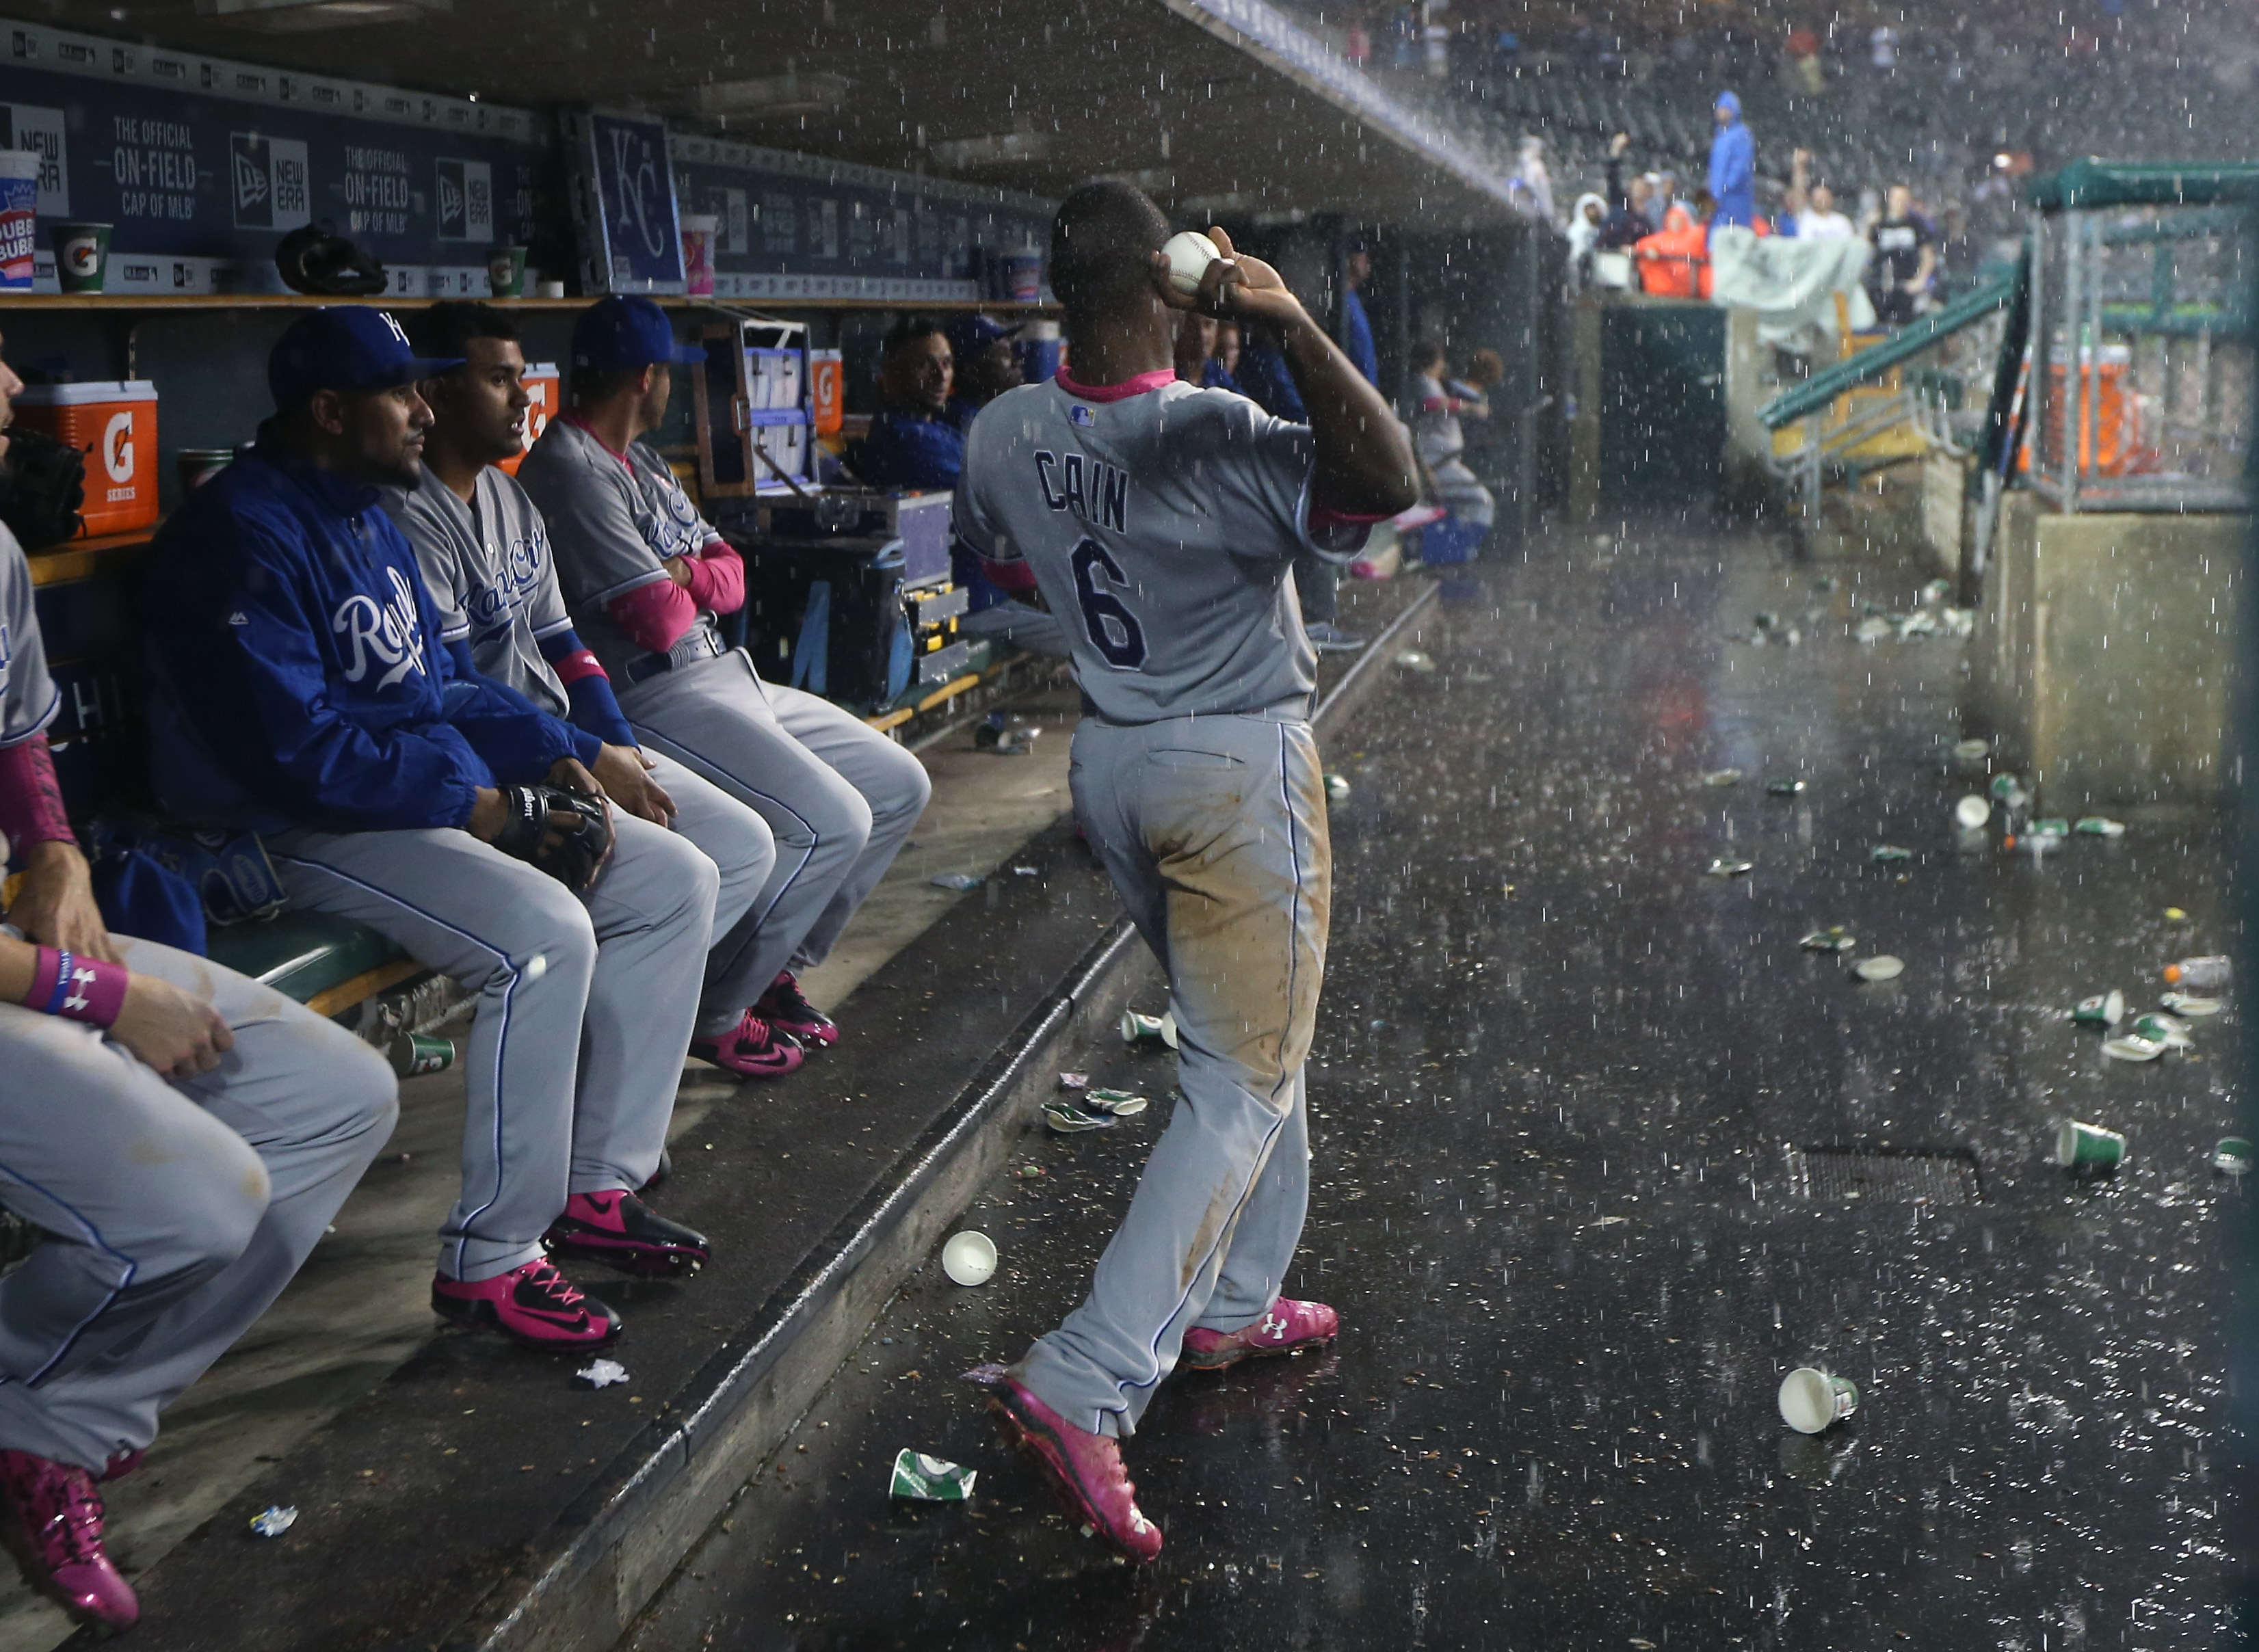 Kansas City Royals' Lorenzo Cain throws a ball to fans during a rain delay in the ninth inning of a baseball game against the Detroit Tigers, Sunday, May 10, 2015, in Detroit. (AP Photo/Carlos Osorio)